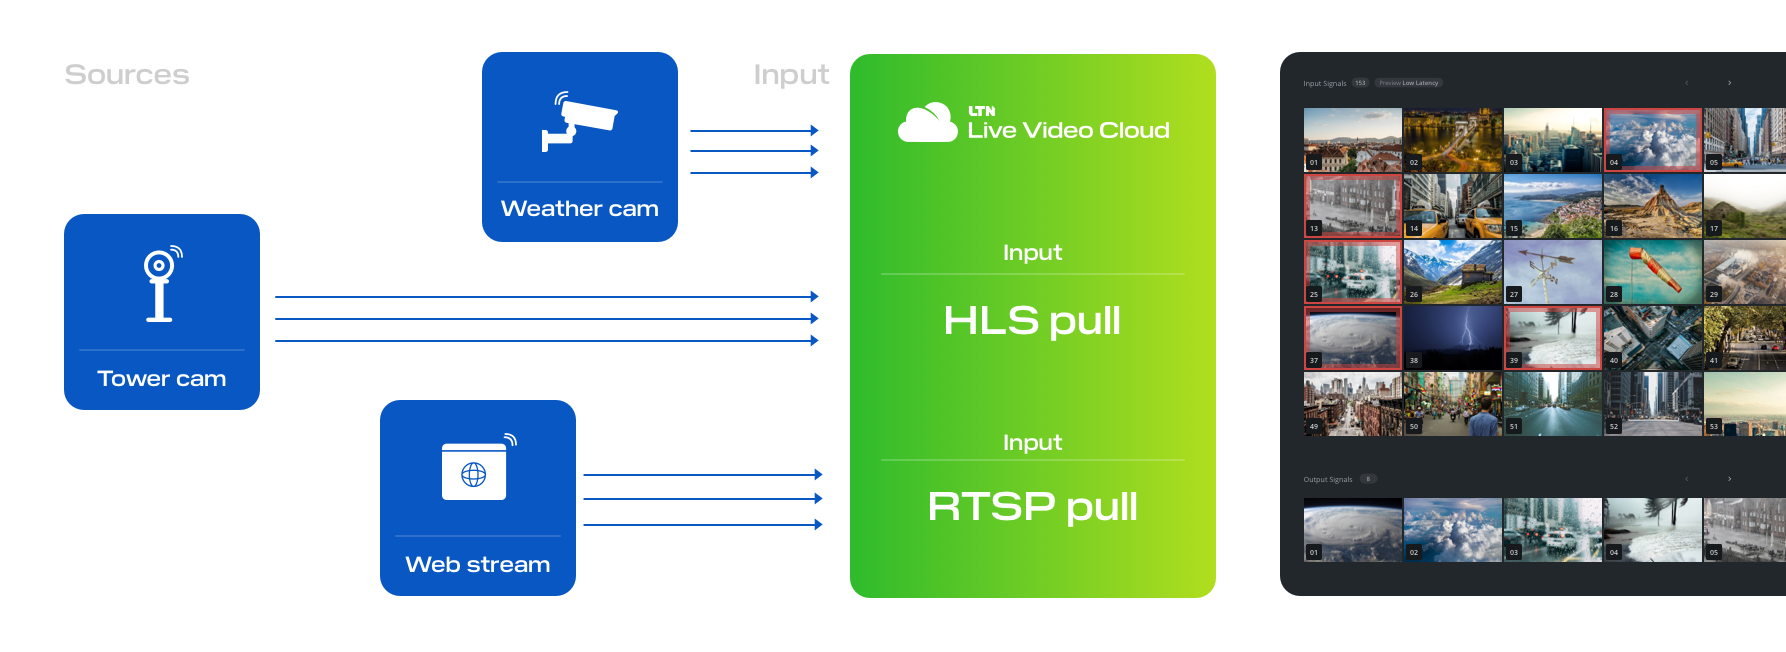 Ingest live streams from HLS and RTSP sources with Live Video Cloud